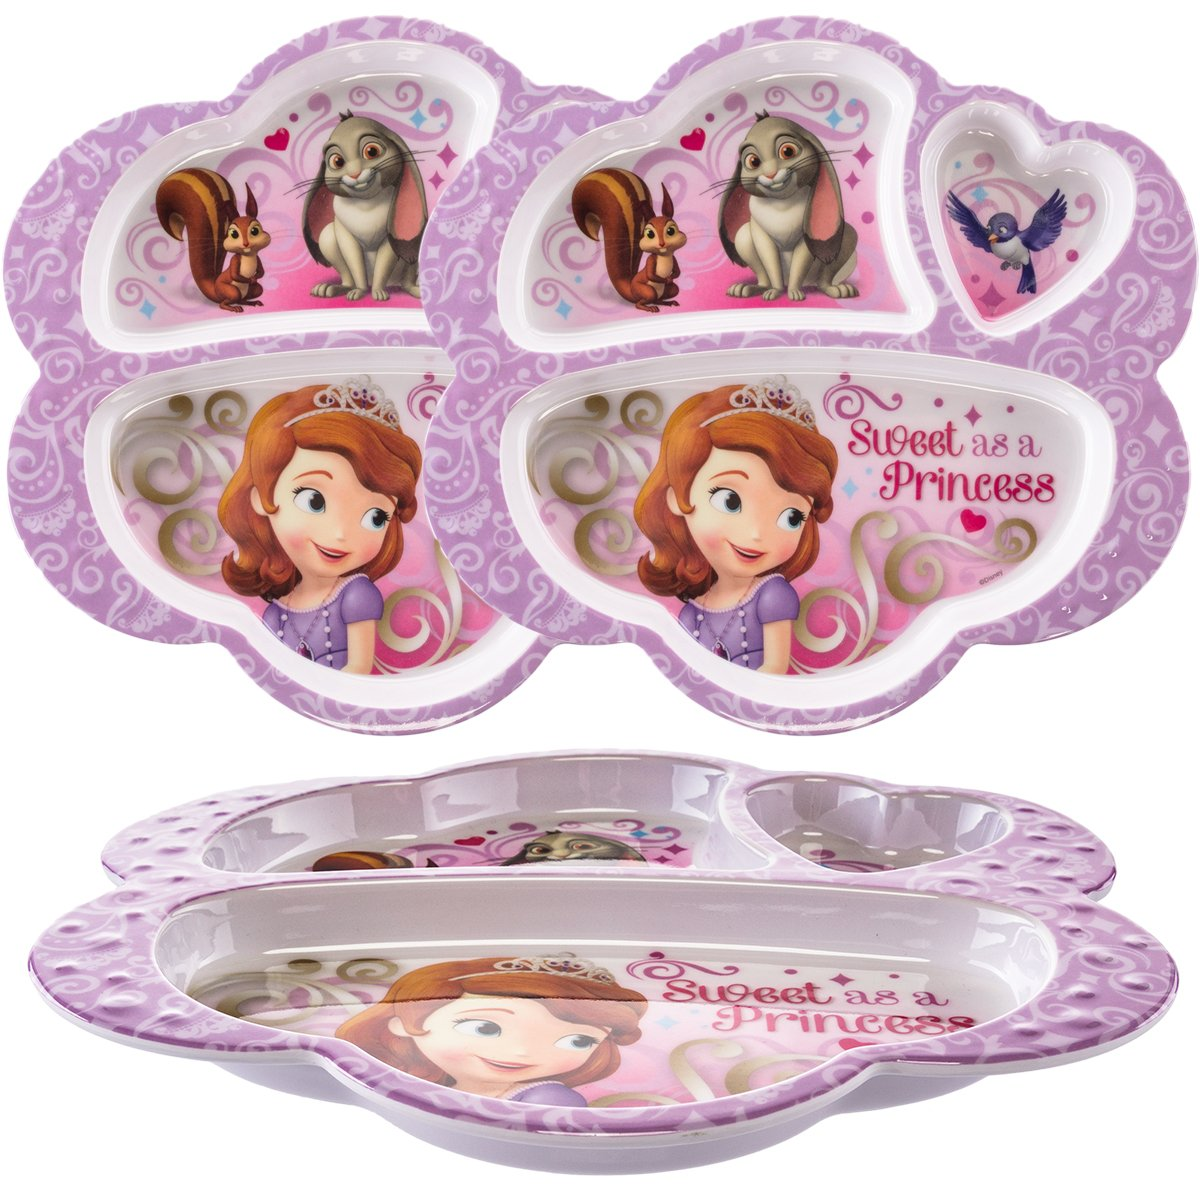 65%OFF【送料無料】 Zak B077TLCTHN。(3パック) Disney Princess Sofia文字プラスチック3-section。(3パック) Divided Kids Plates Divided B077TLCTHN, ファッション:69306a2a --- beyonddefeat.com